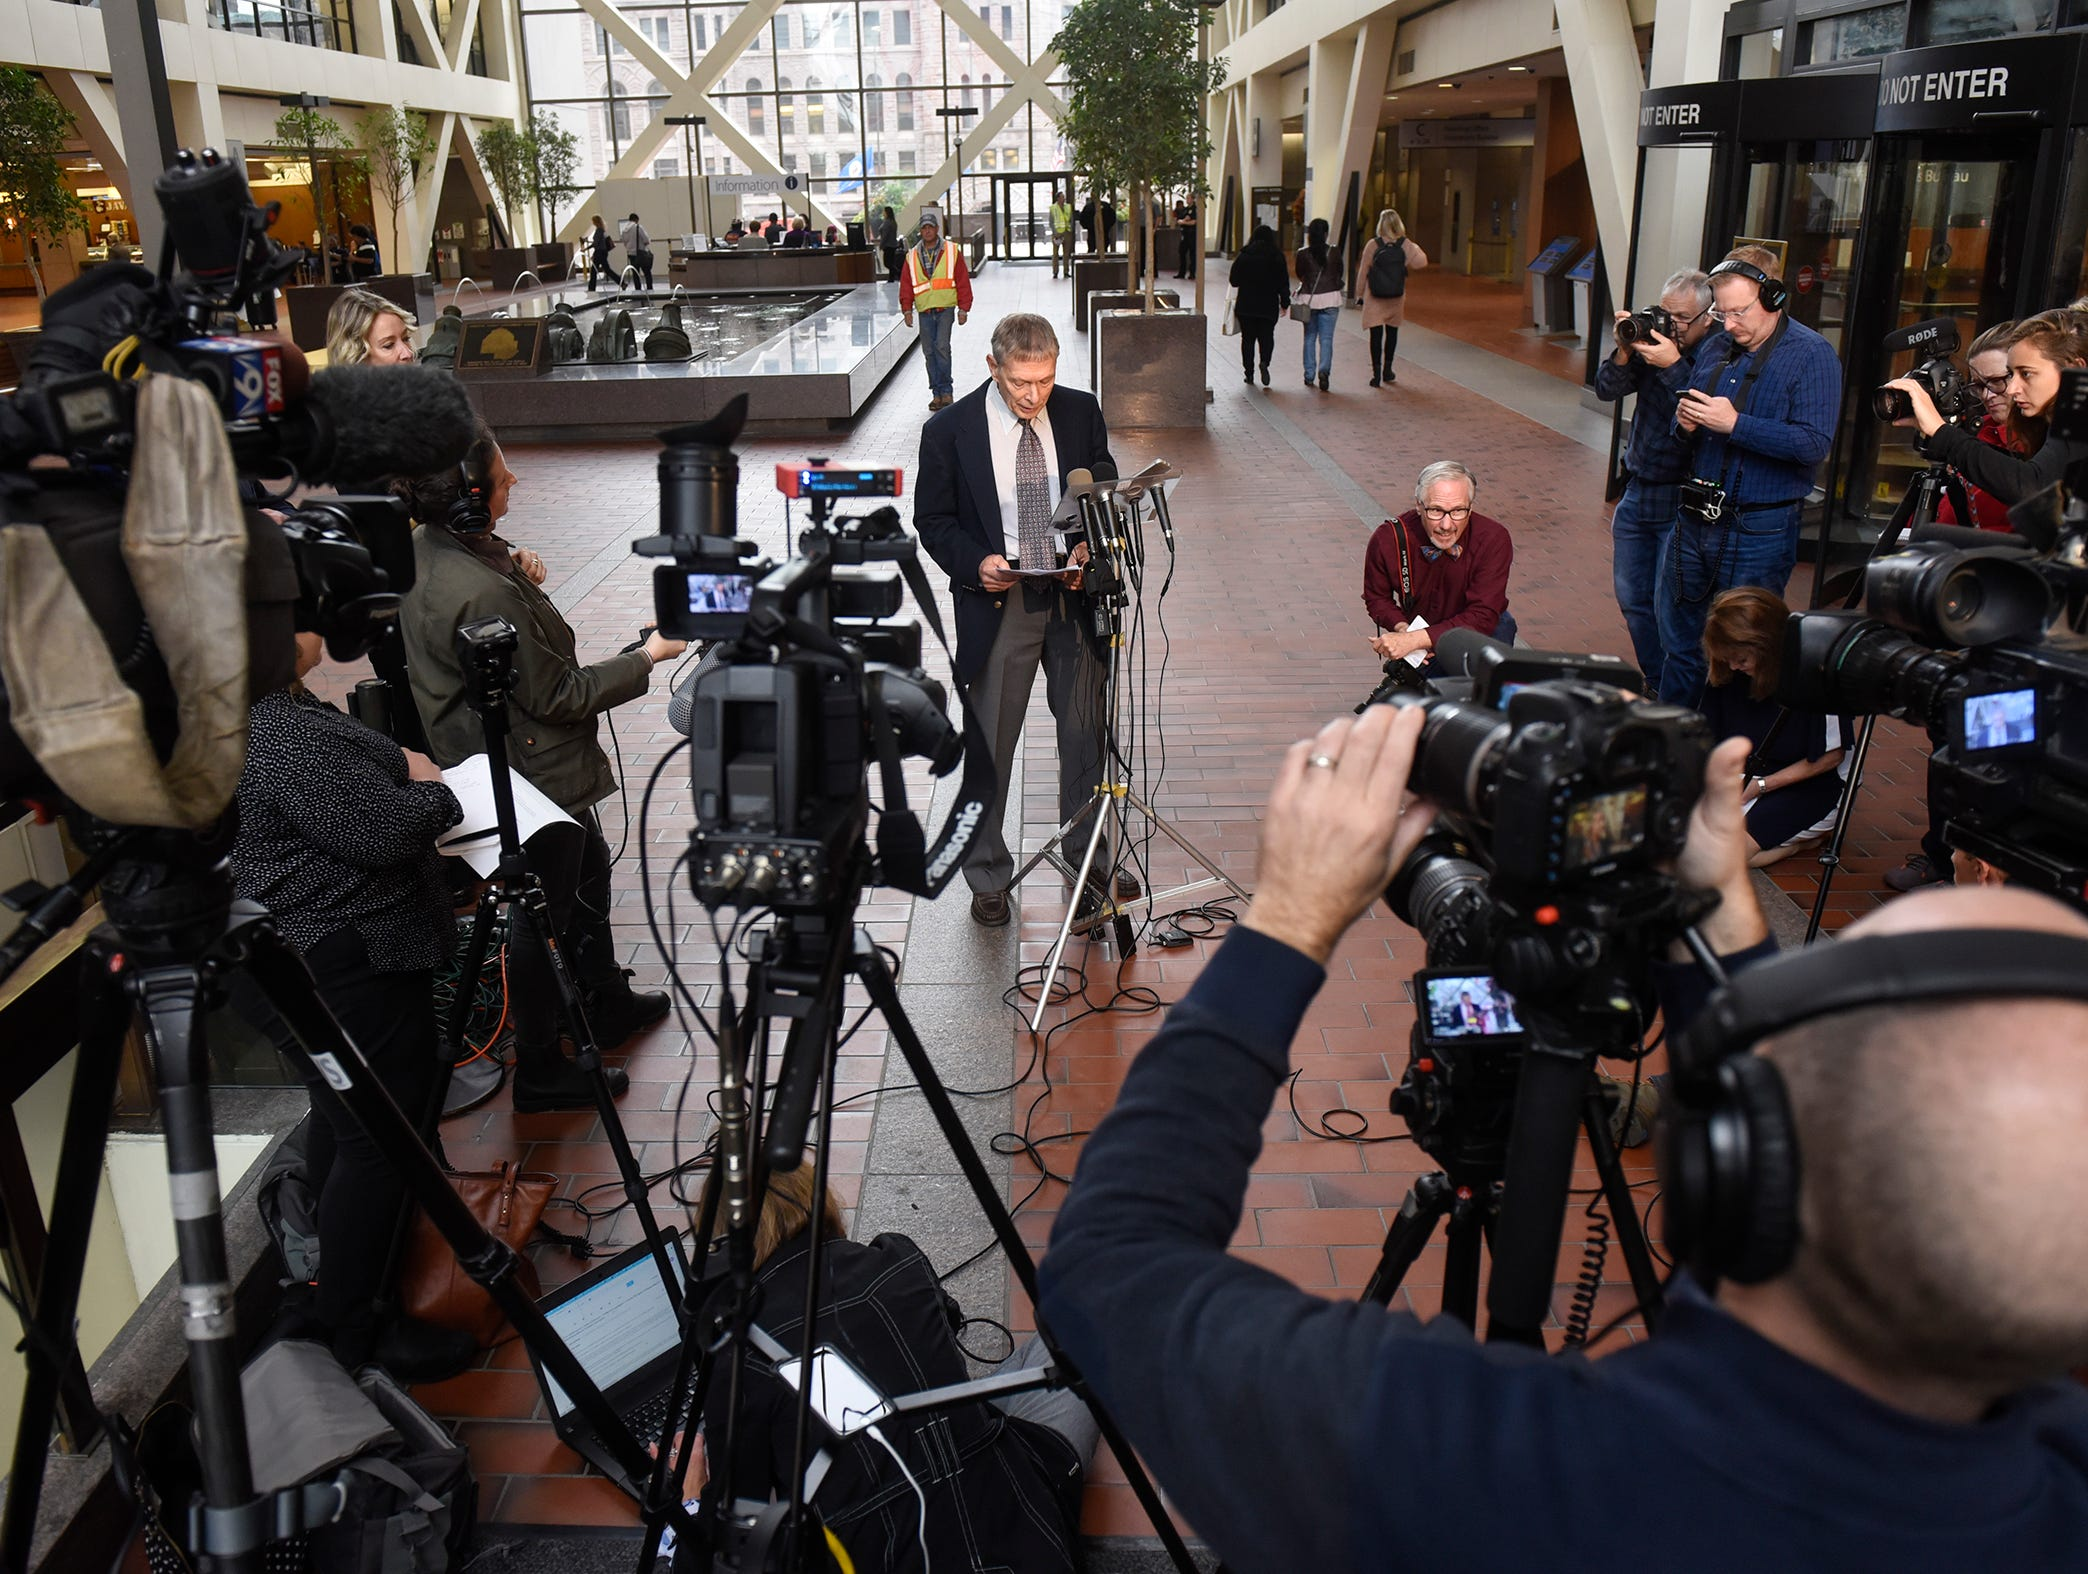 Former FBI agent Steve Gilkerson speaks during a press conference Tuesday, Oct. 2, at the Hennepin County Government Center in Minneapolis.